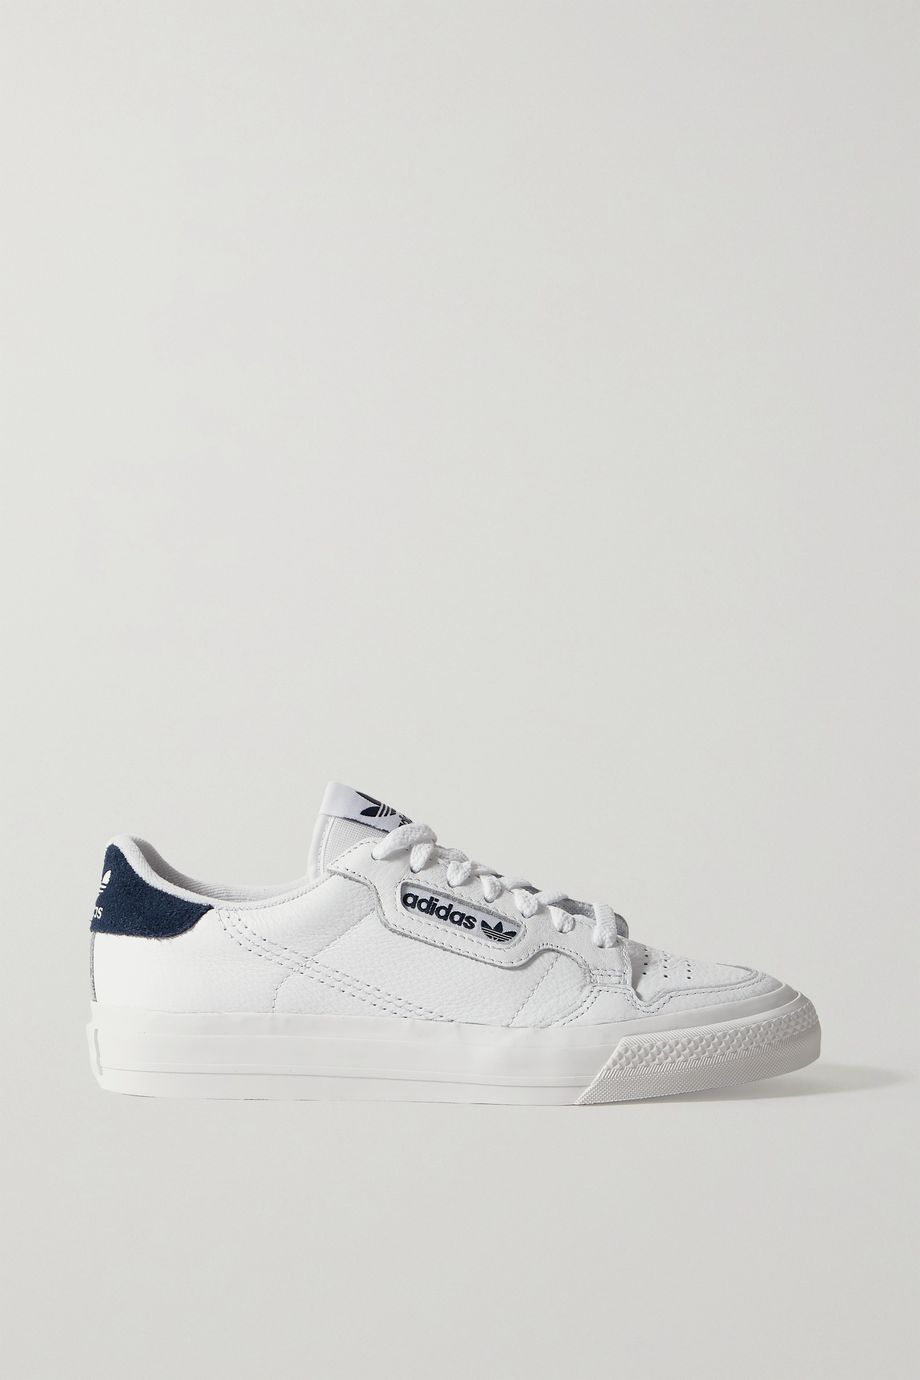 adidas Originals Continental Vulc suede-trimmed leather sneakers